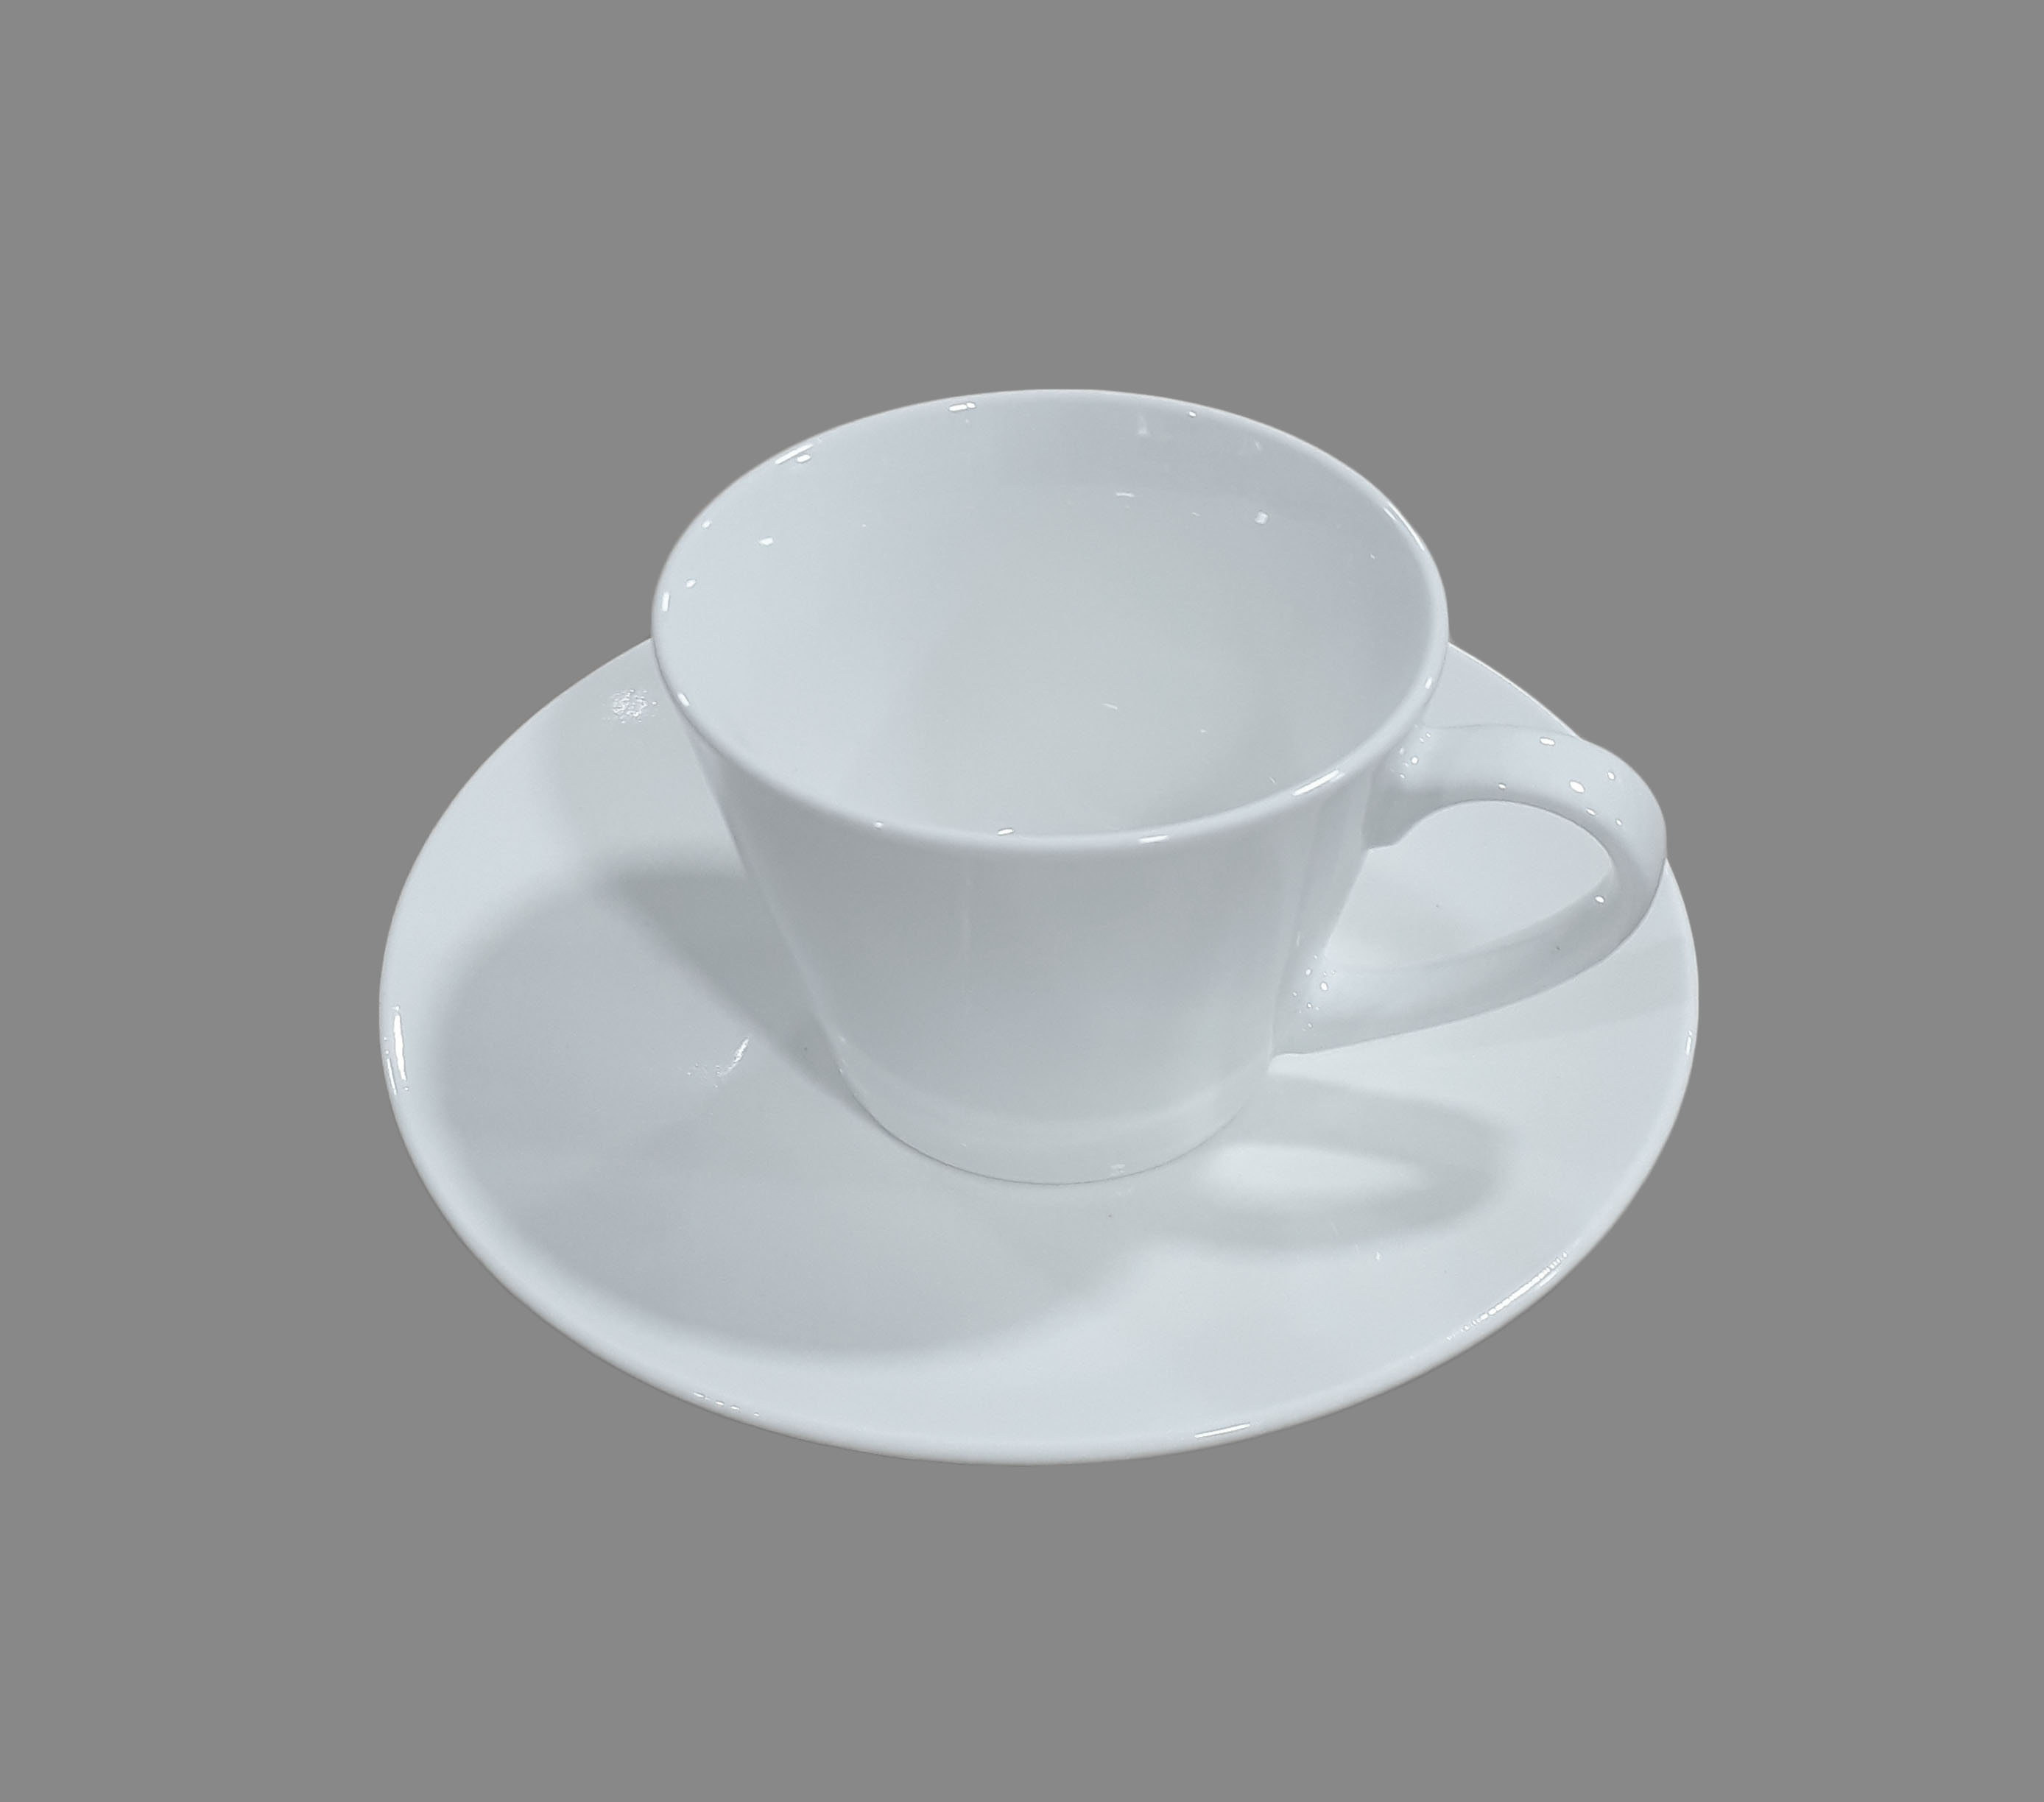 Glass Cup And Saucer Set Elegant Florence Plain White Ceramic Glass Cappuccino Latte Cup Lazada Ph